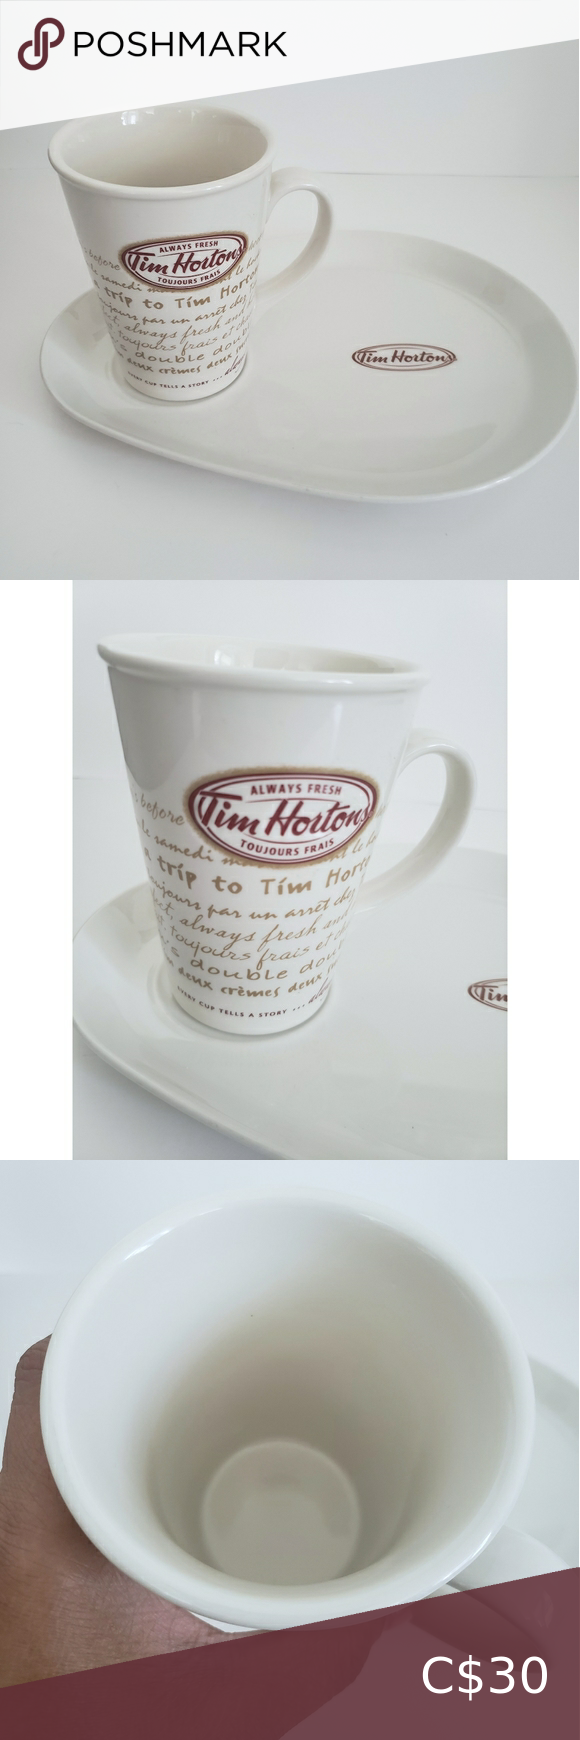 Tim Hortons Plate and Coffee Mug in 2020 Tim hortons